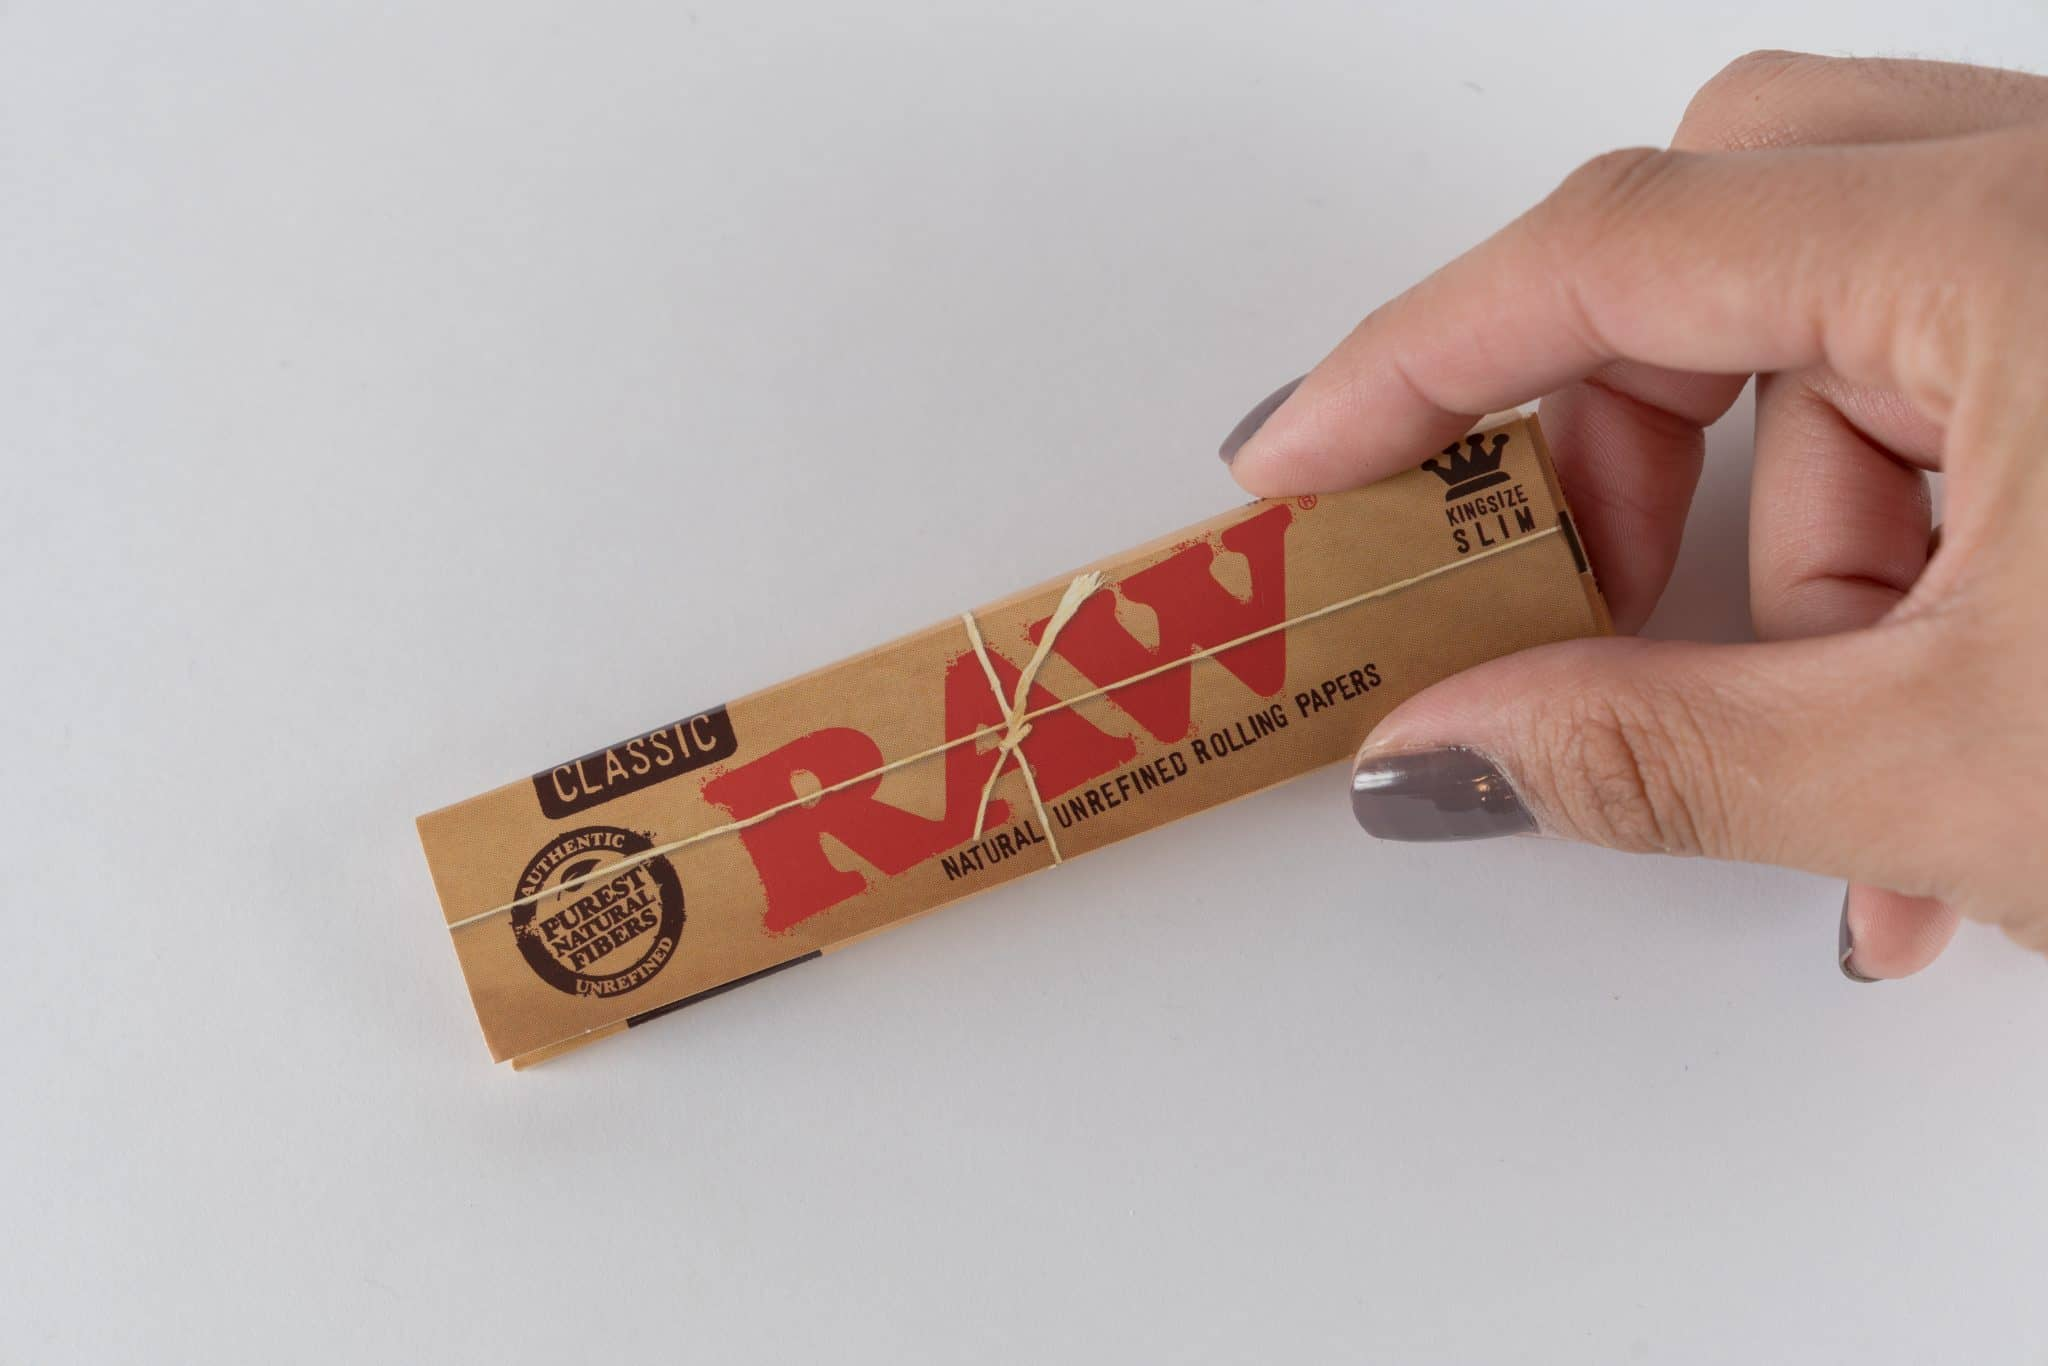 Organic Kingsize RAW papers for rolling your own. Kingsize Slim Cases available from DispensarySource.com.